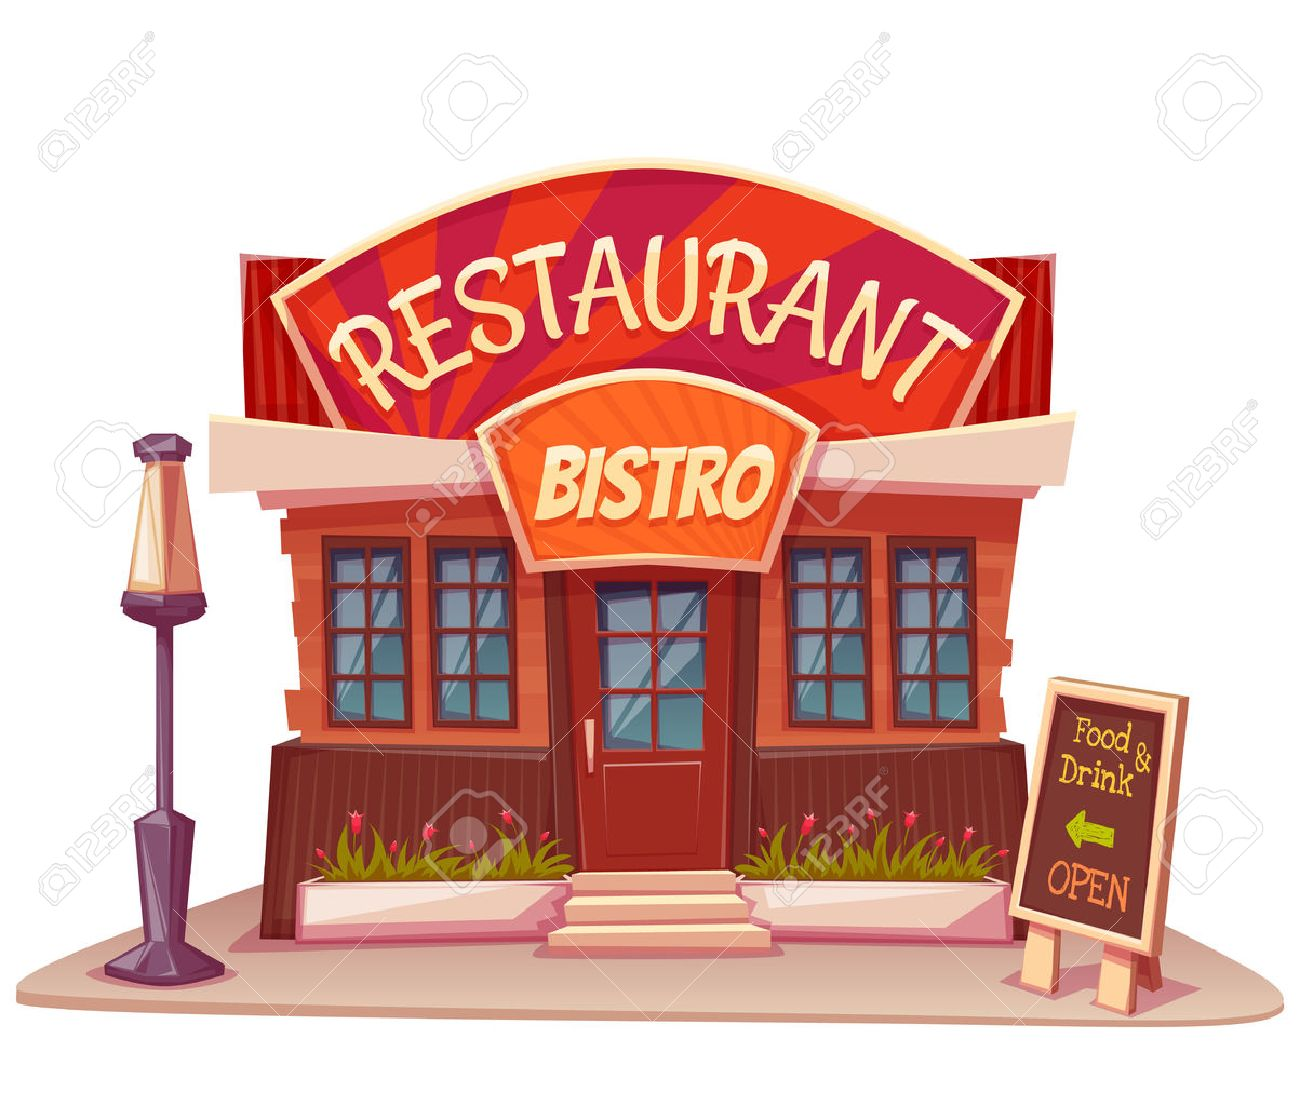 7,815 Restaurant Exterior Cliparts, Stock Vector And Royalty Free.